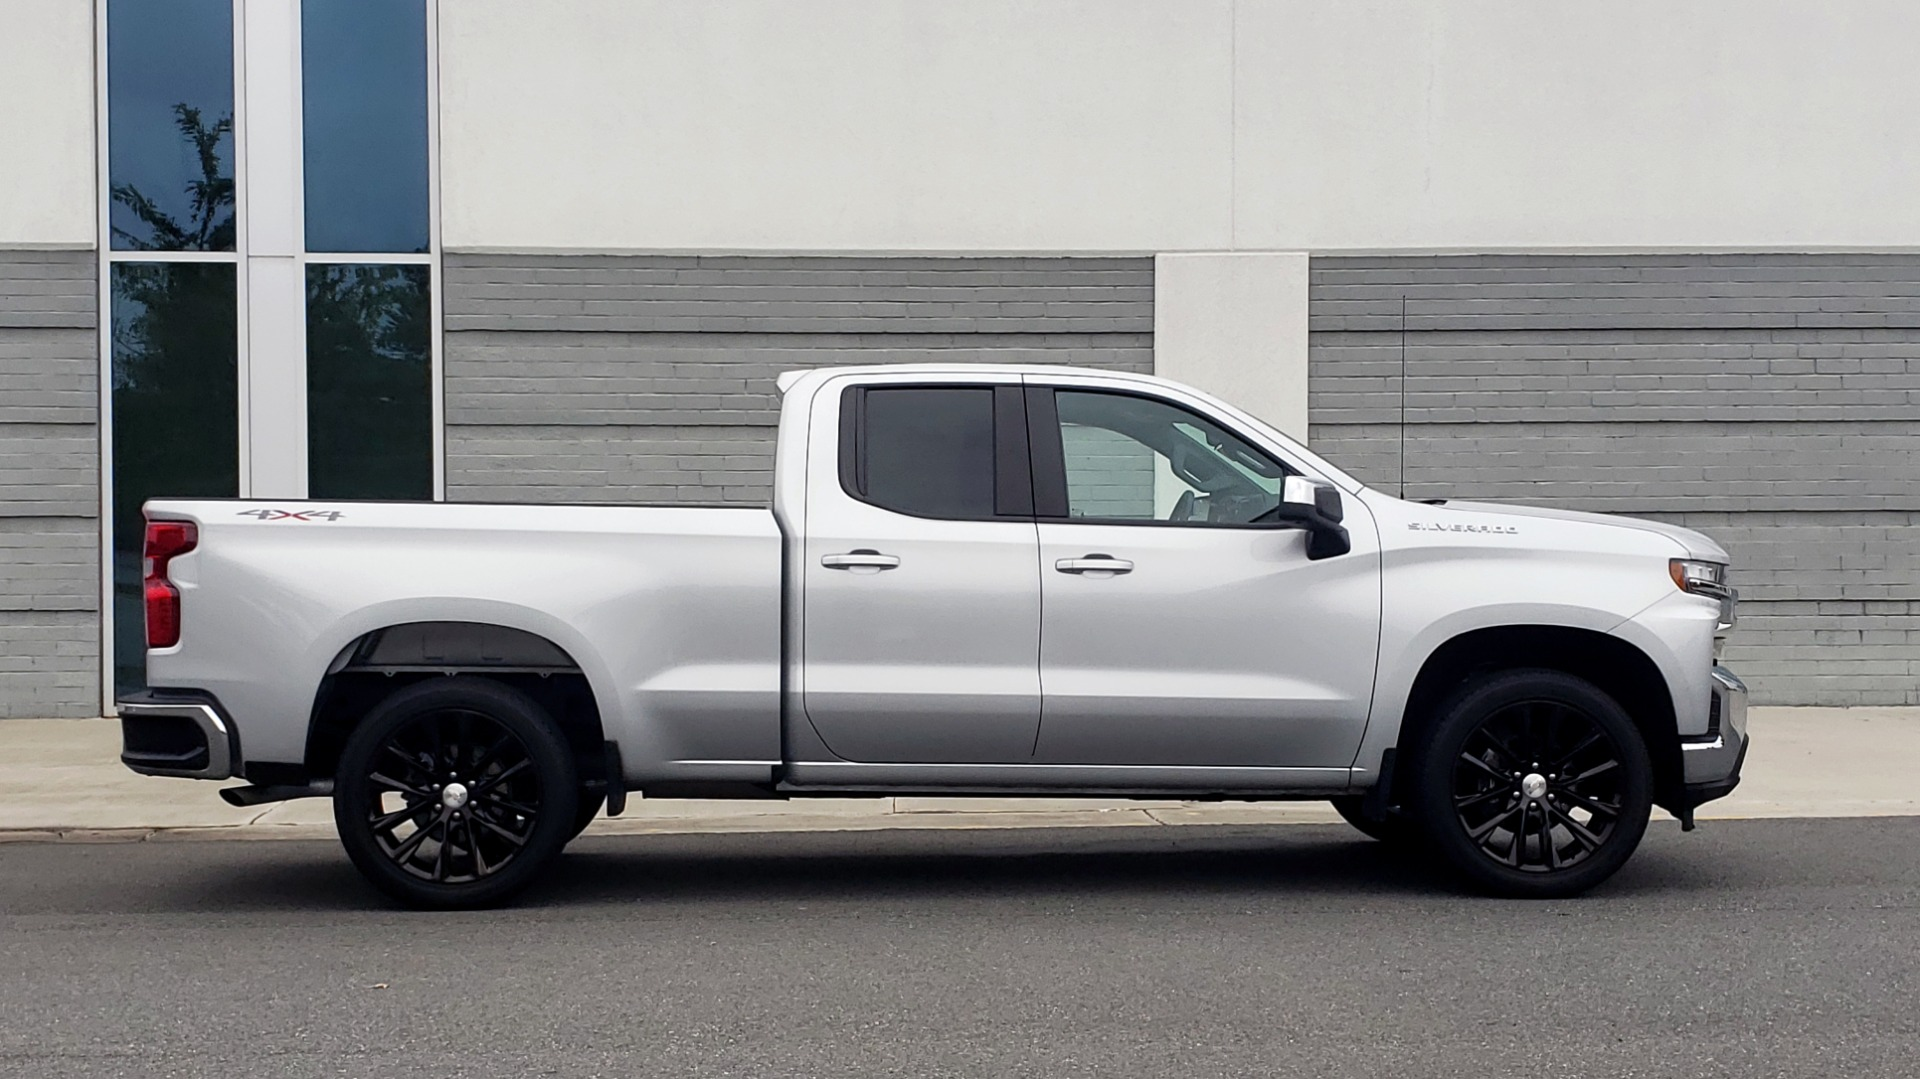 Used 2020 Chevrolet SILVERADO 1500 LT 4WD DOUBLECAB 147 WB / 5.3L V8 / BEDLINER / REARVIEW for sale $41,995 at Formula Imports in Charlotte NC 28227 6